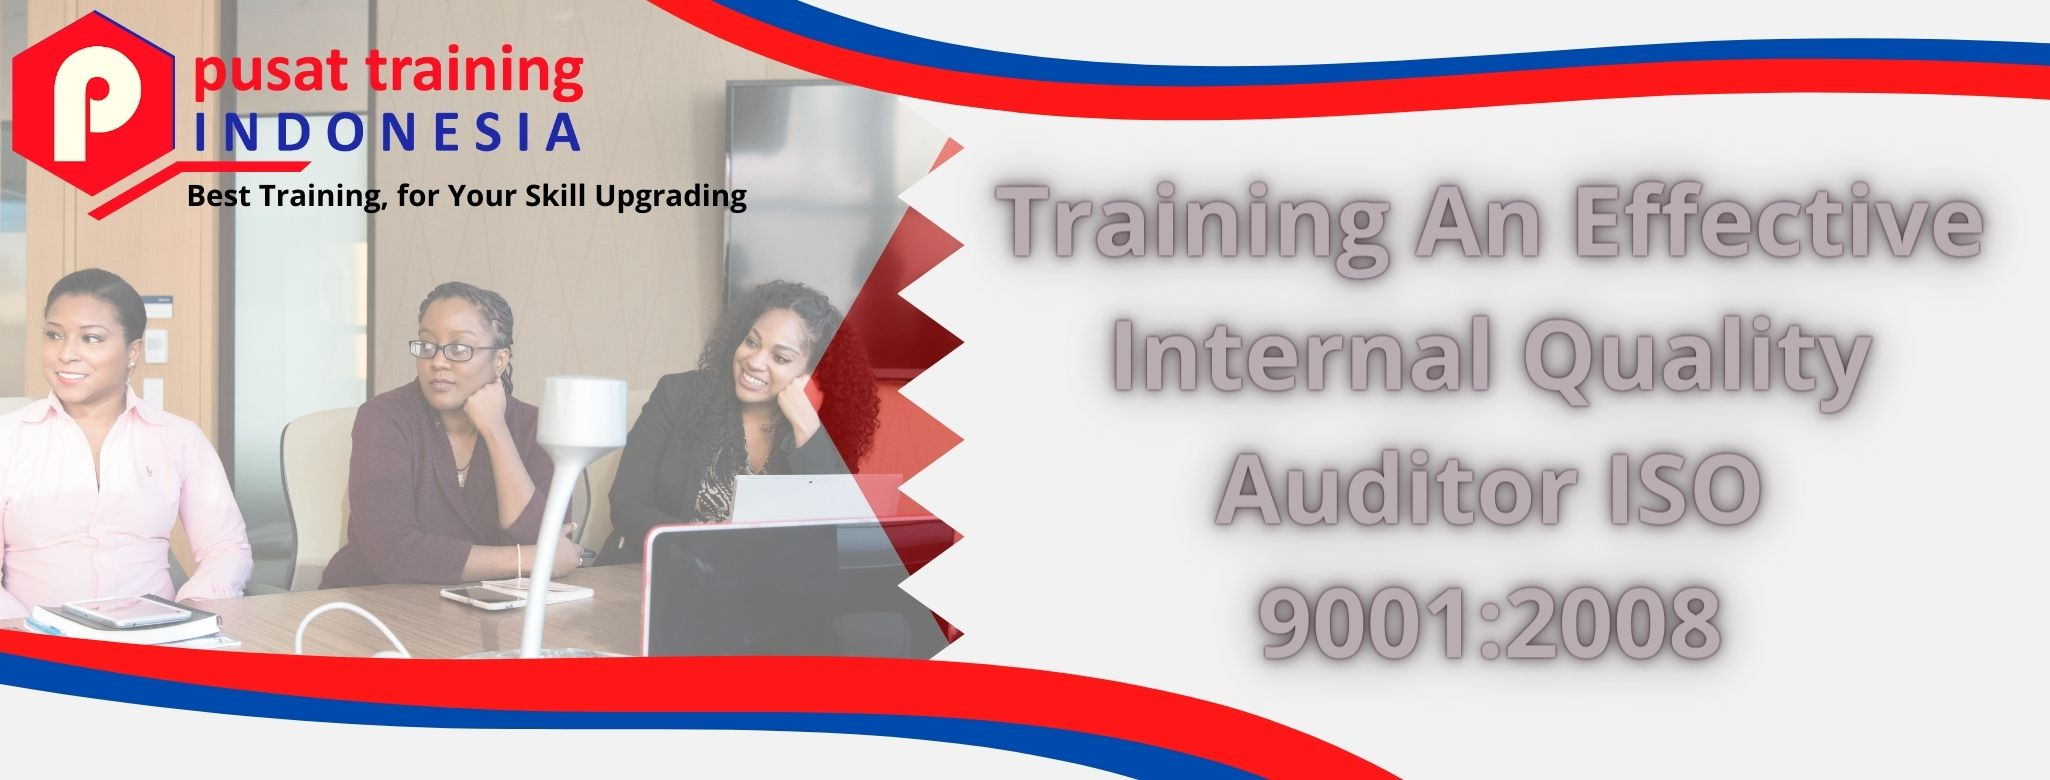 Training An Effective Internal Quality Auditor ISO 90012008